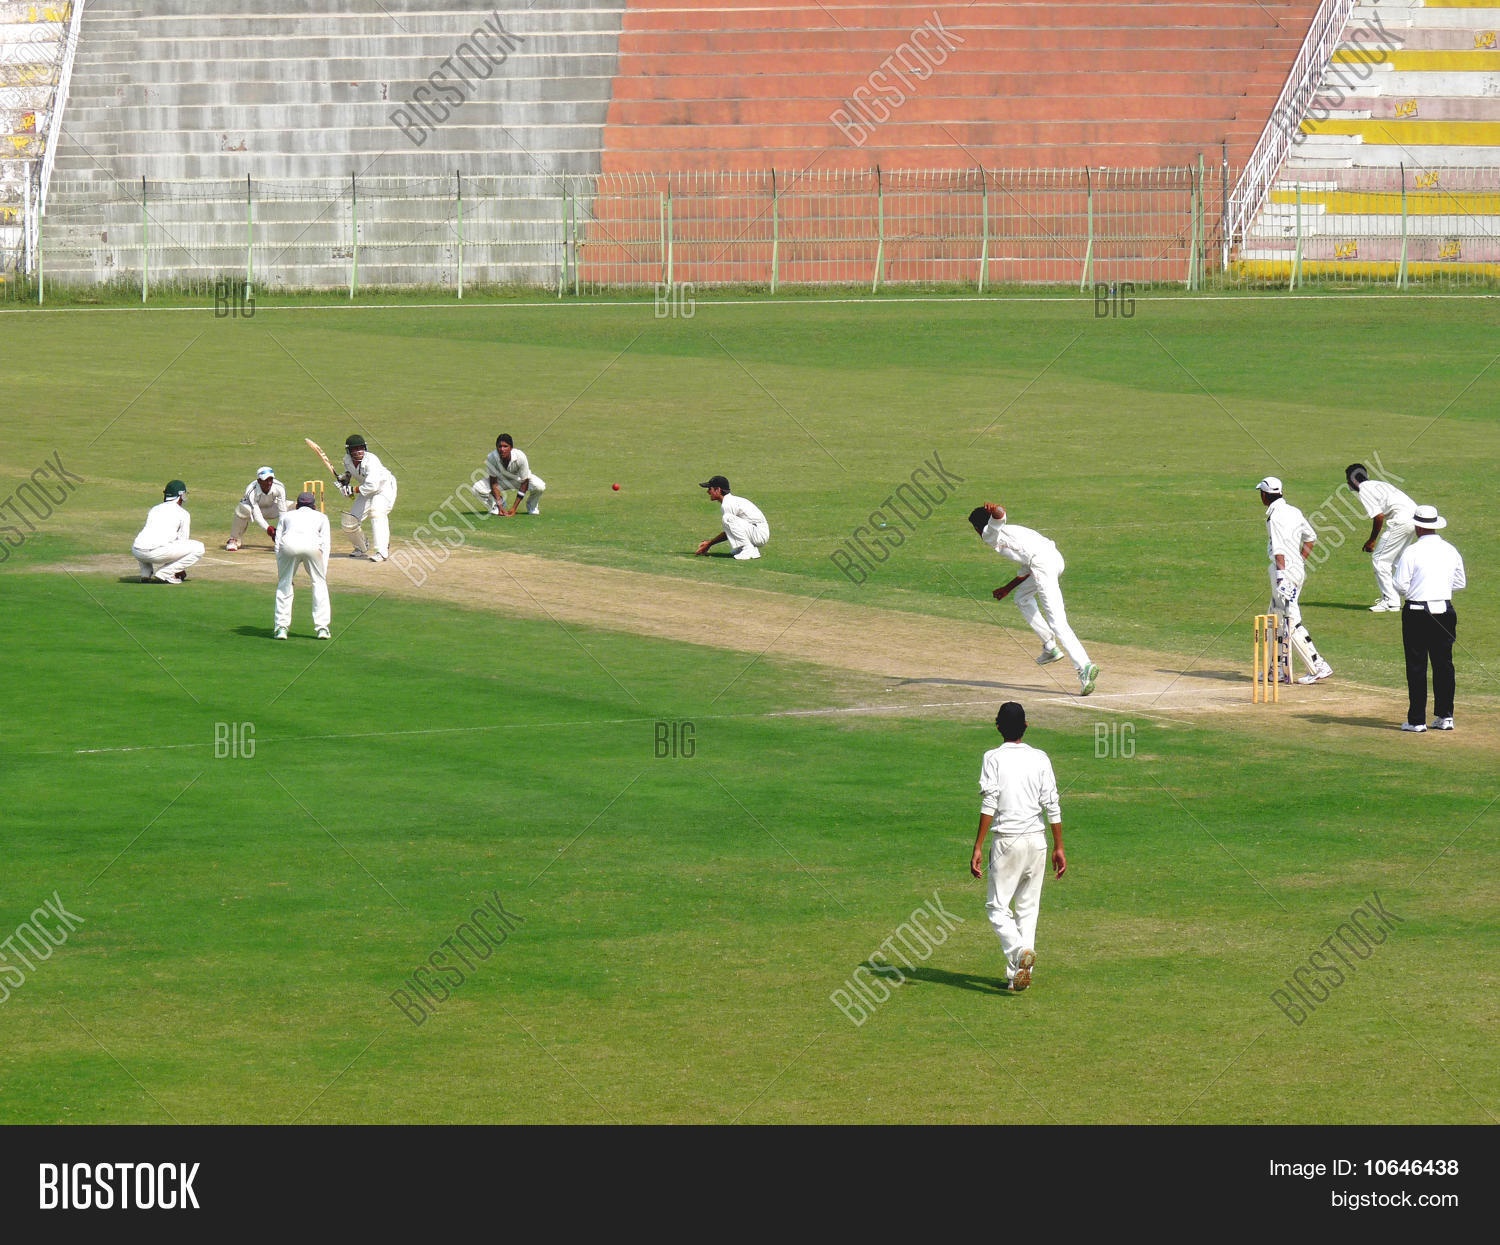 Cricket Bowling Attack Image & Photo (Free Trial) | Bigstock